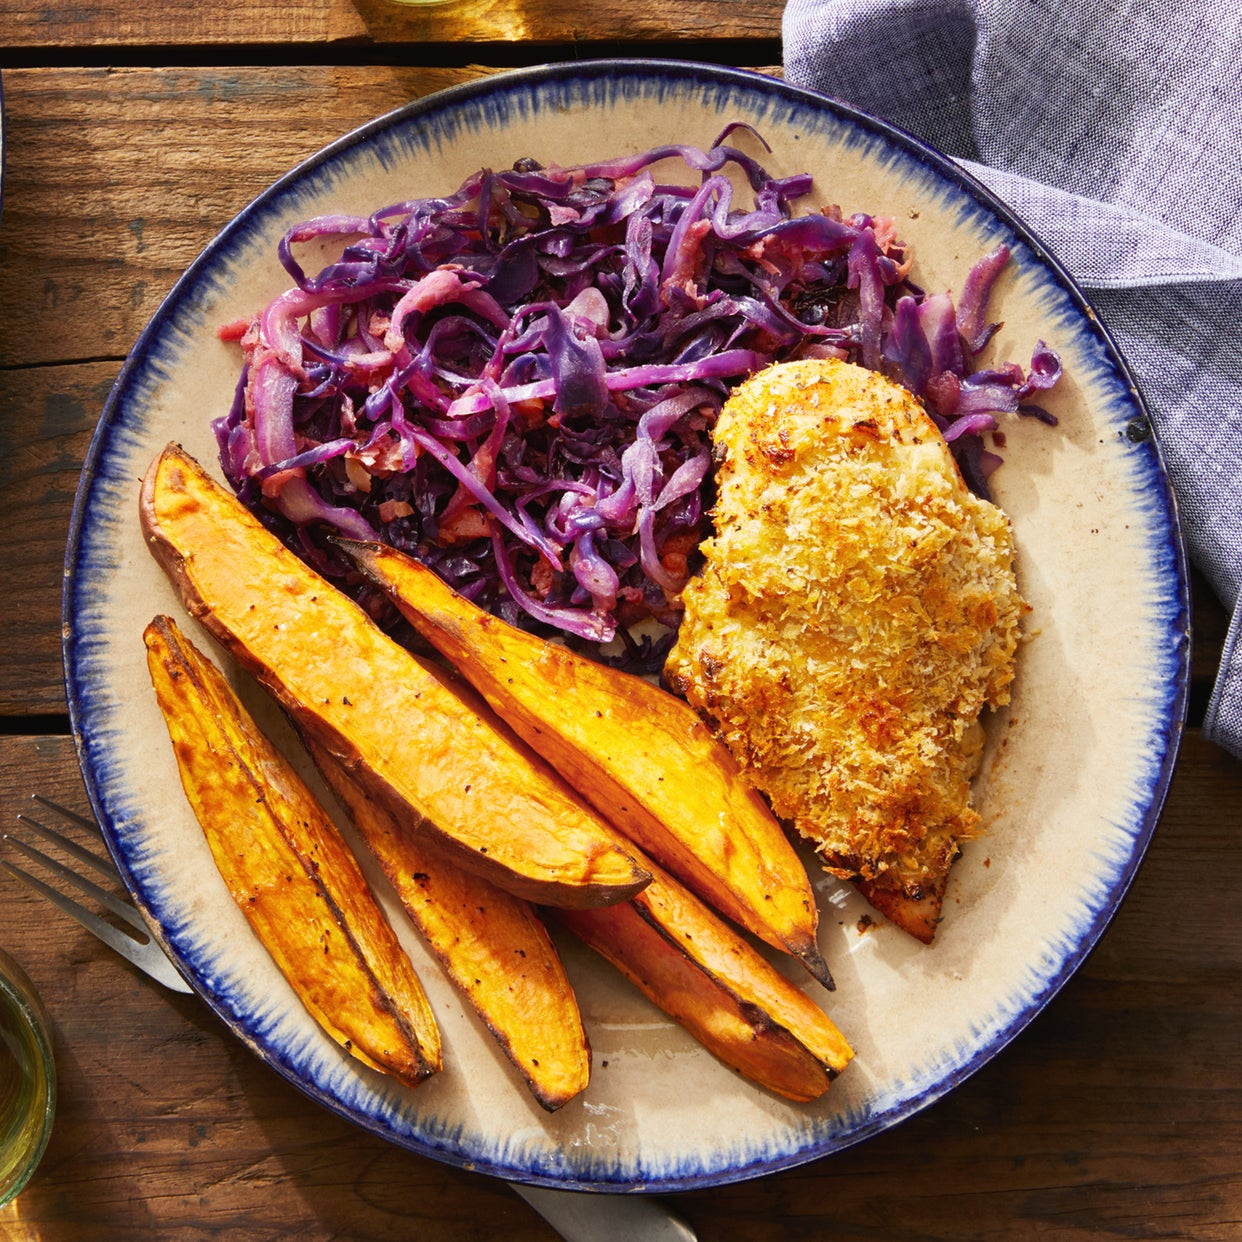 Creamy Onion Baked Chicken with Sautéed Red Cabbage & Apple